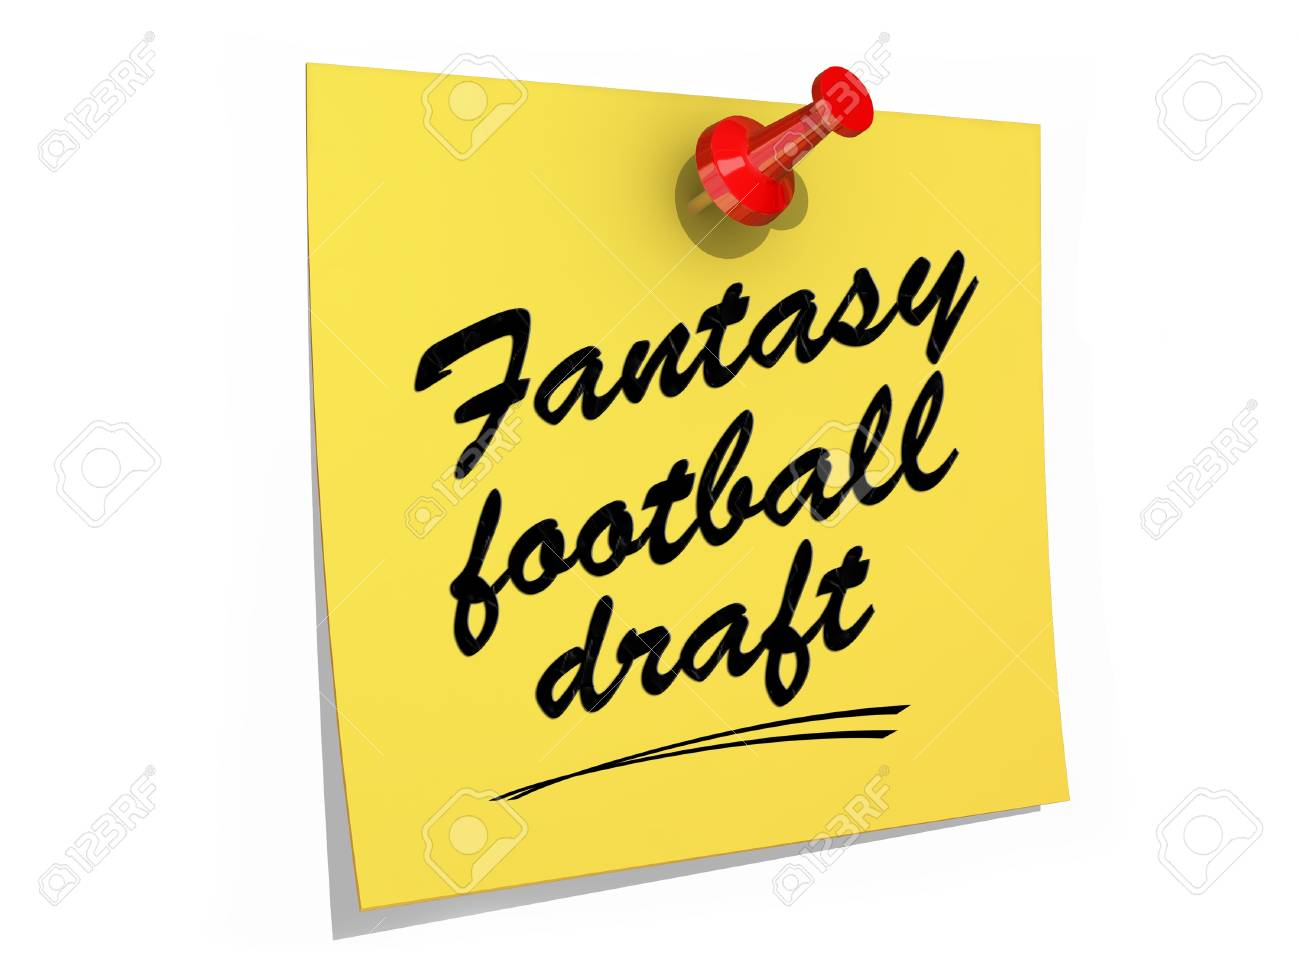 A note pinned to a white background with the text Fantasy Football Draft Stock Photo - 19327531